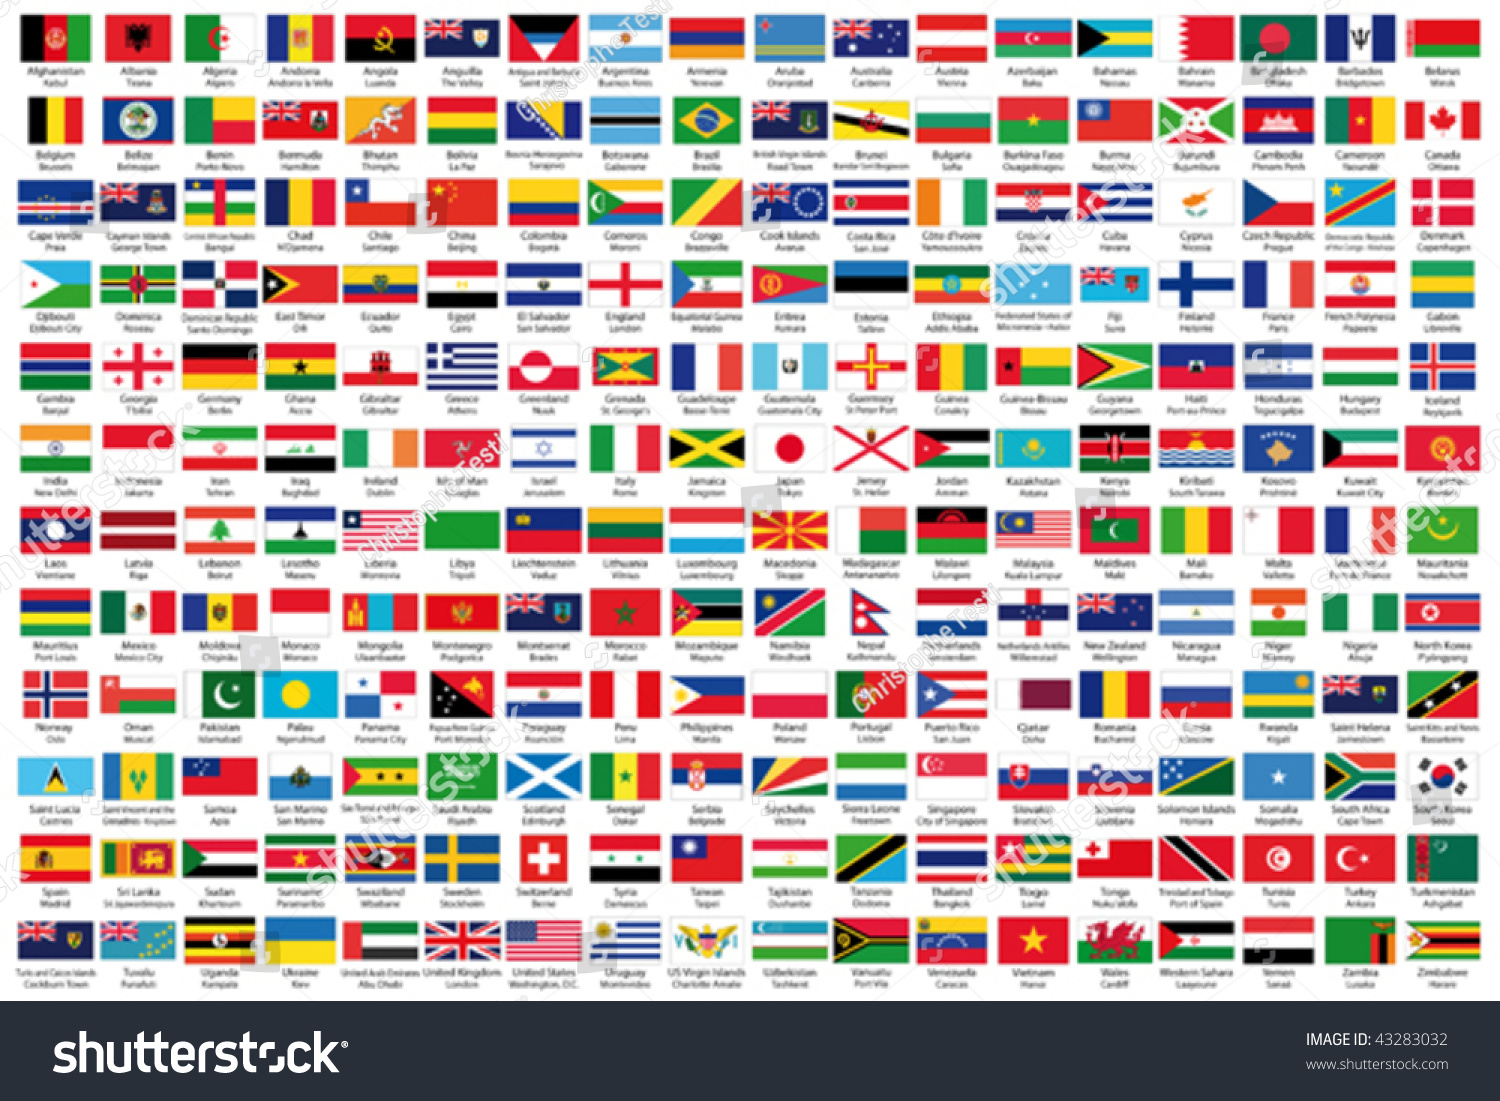 Official Flags World Alphabetical Order Stock Vector - All country name and capital